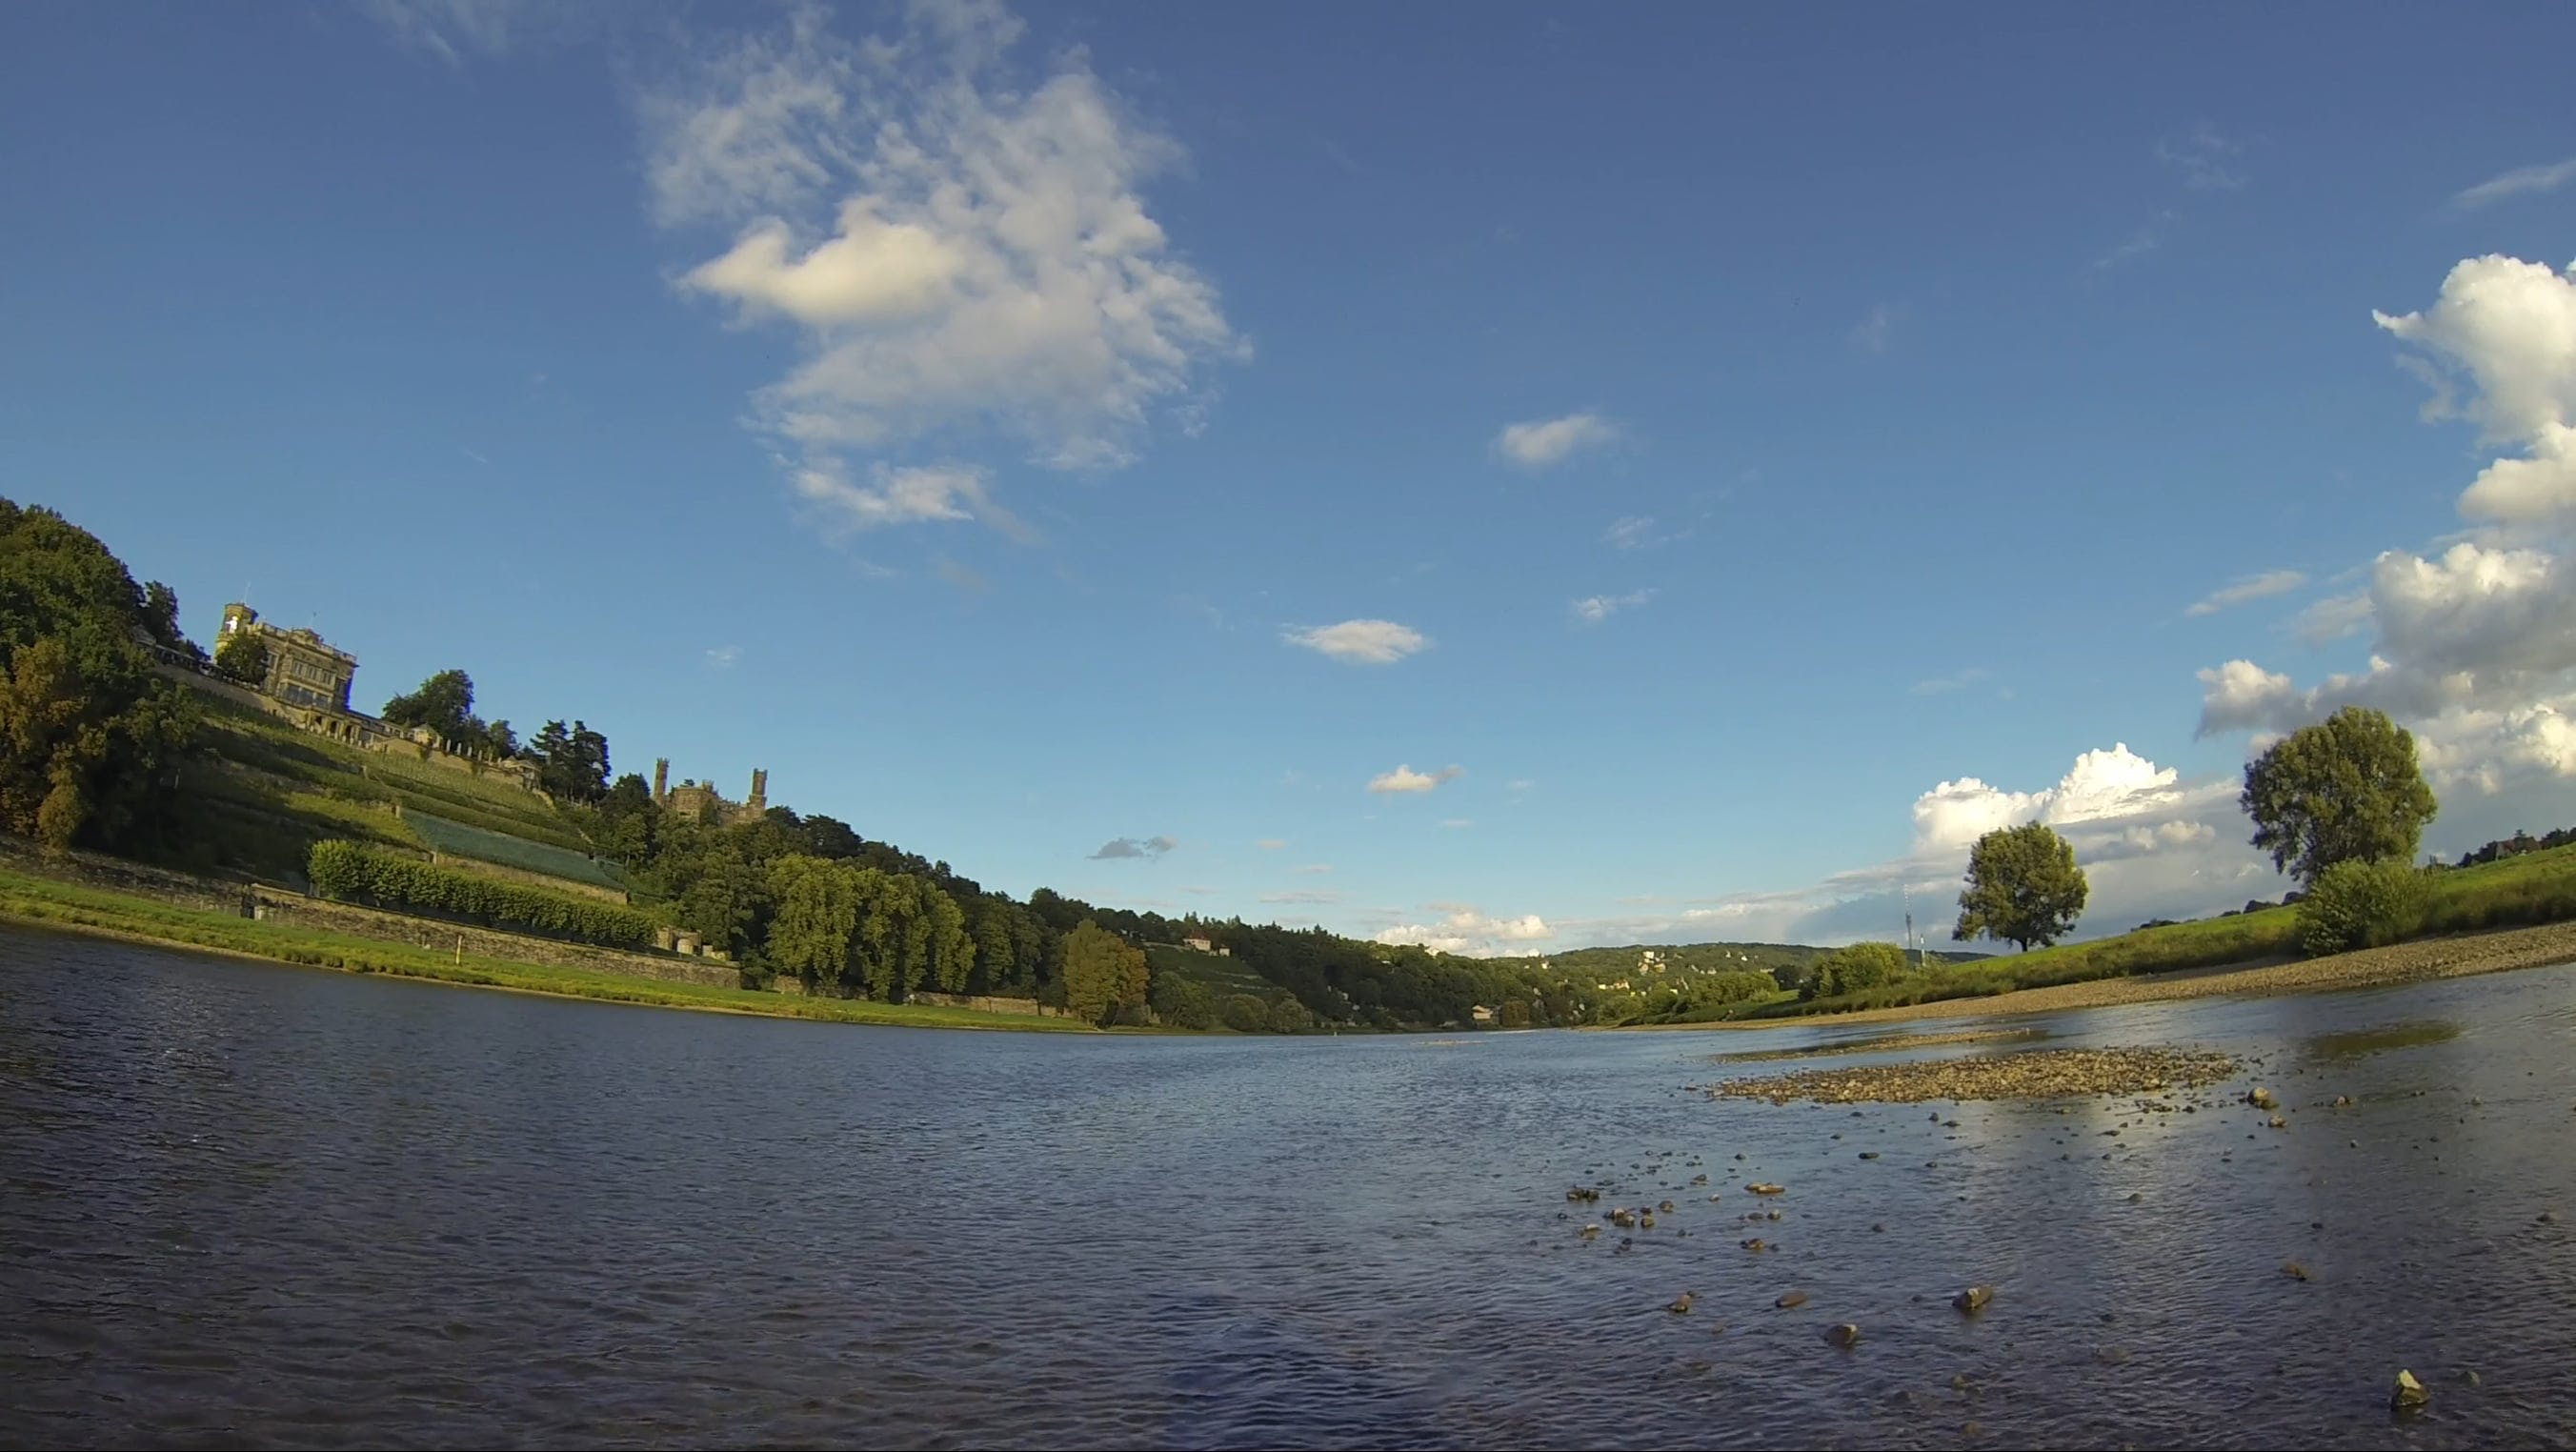 180 Degree View Of River